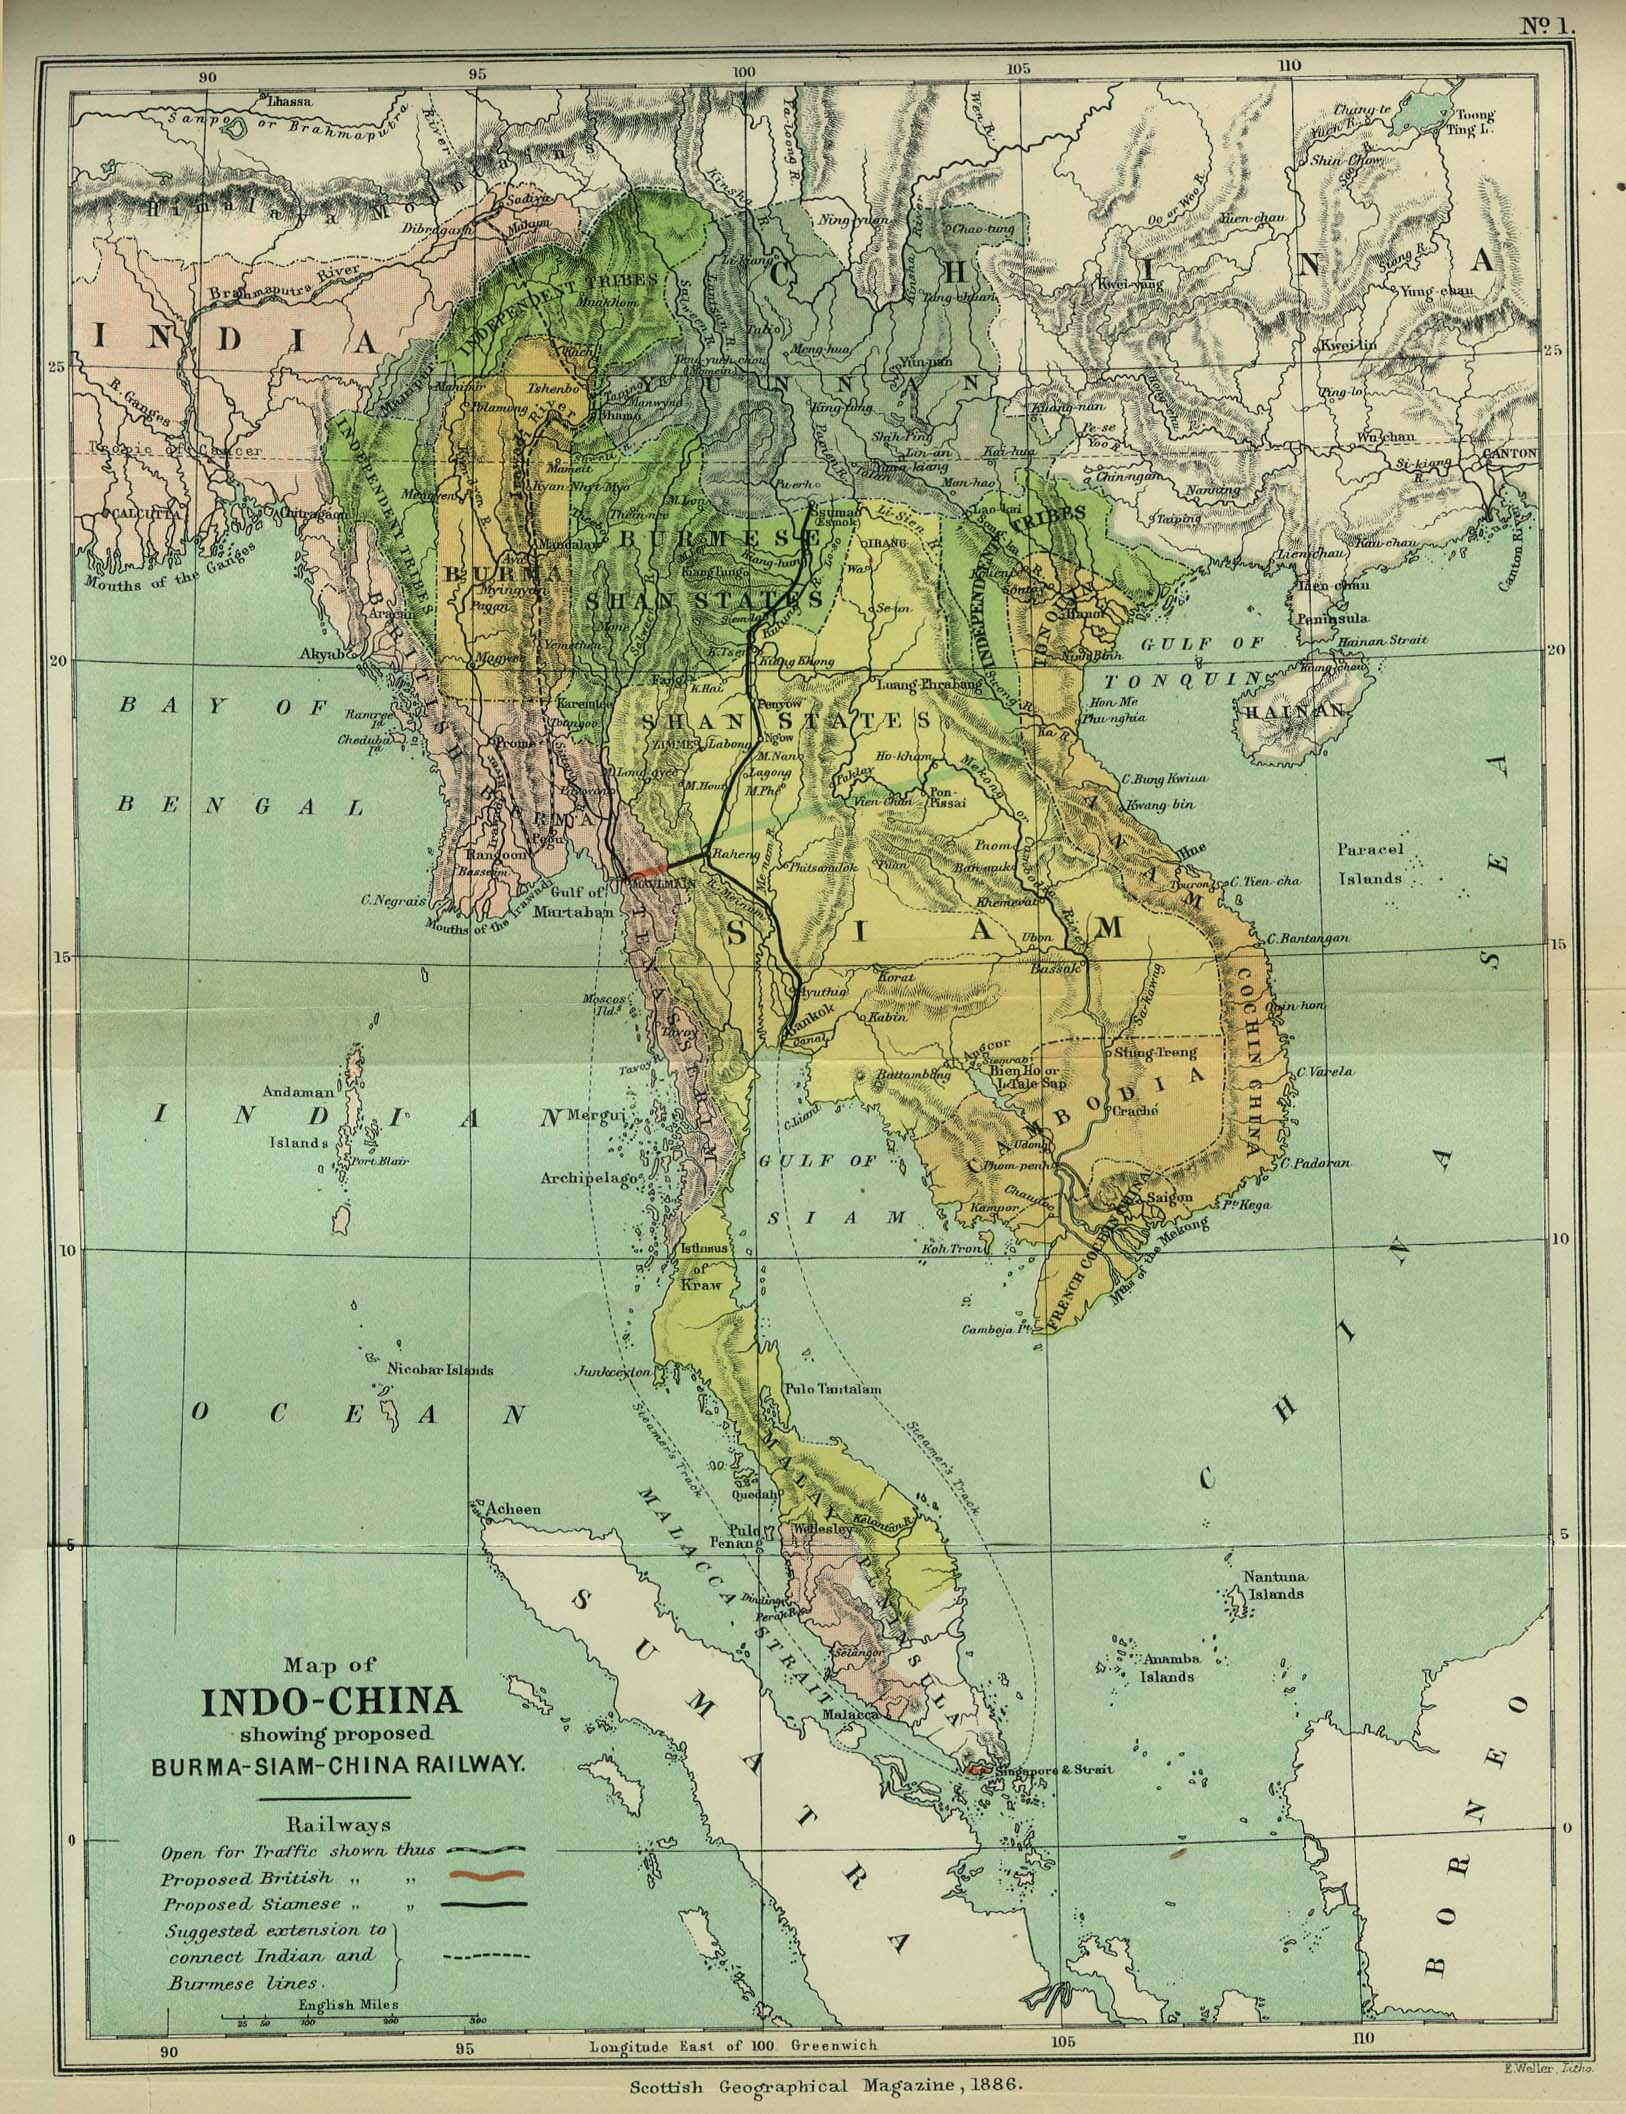 Online burma library reading room maps and satellite imagery title map of indo china showing proposed burma siam china railway publicscrutiny Gallery